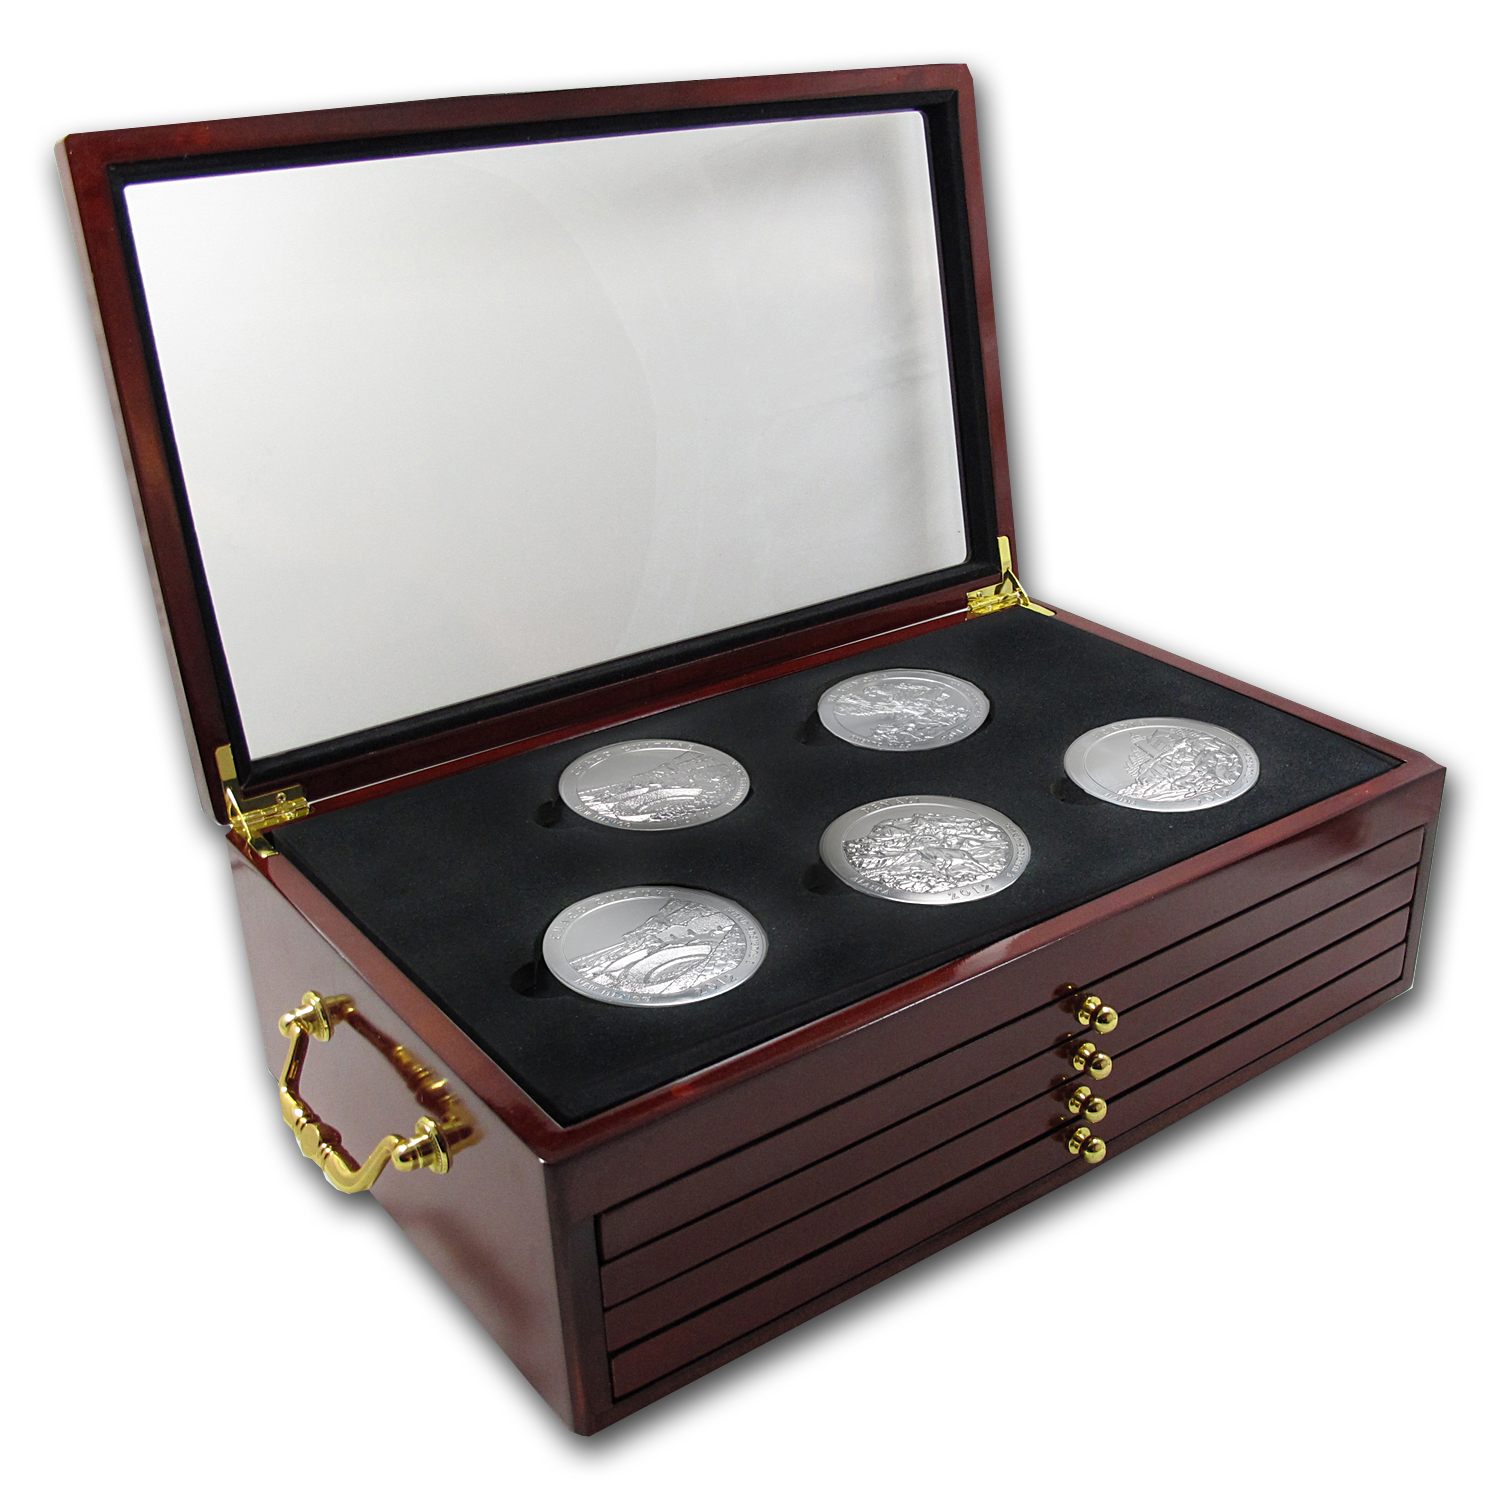 2010 - 2012 5 oz Silver ATB 15-Coin Set in Elegant Display Box